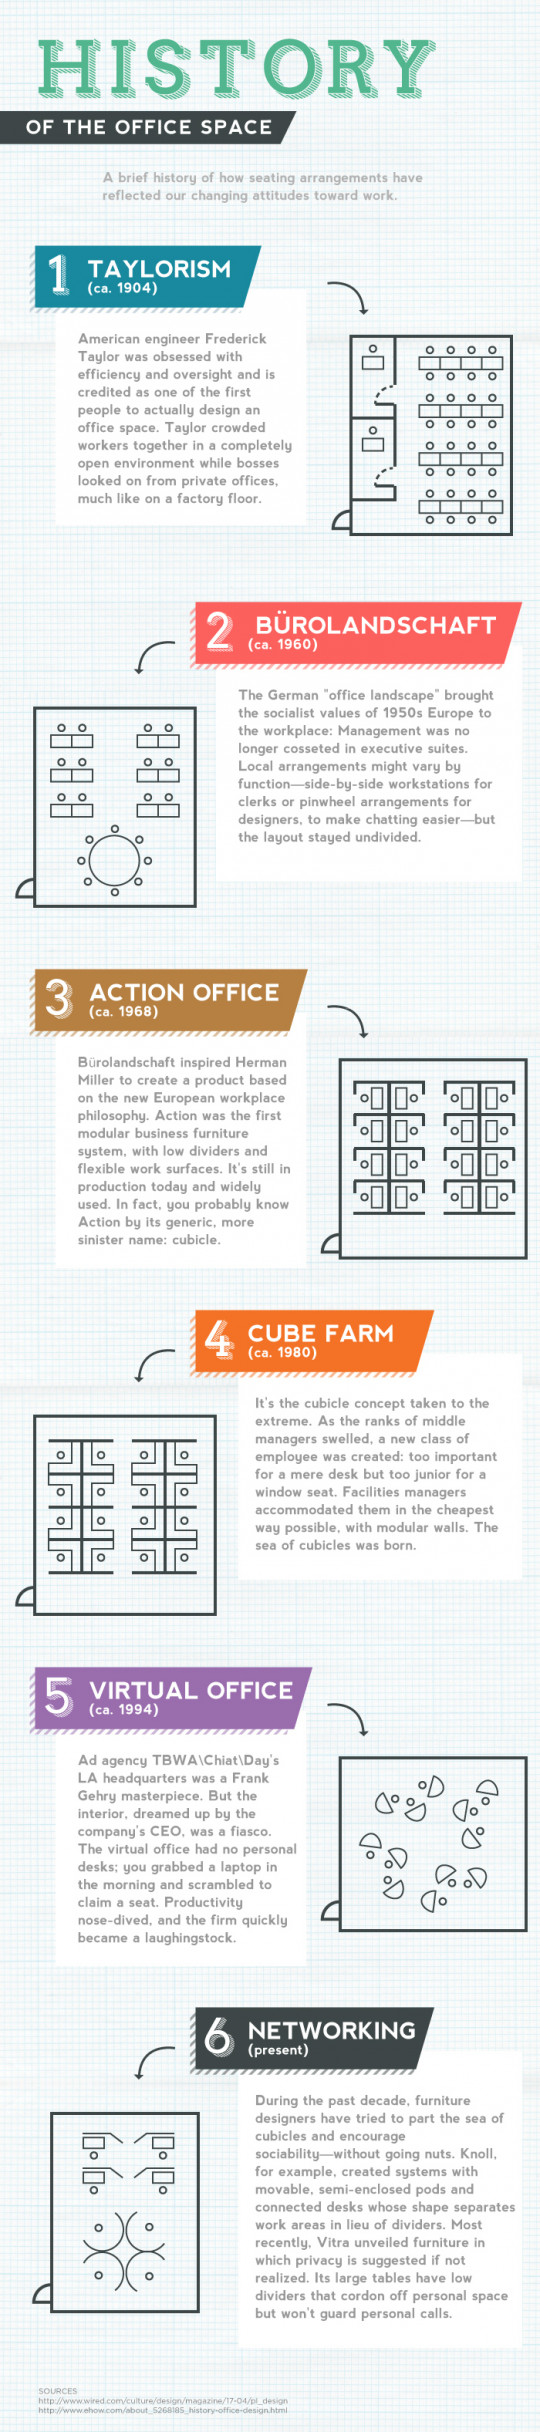 Anatomy of the Perfect Office Space - History